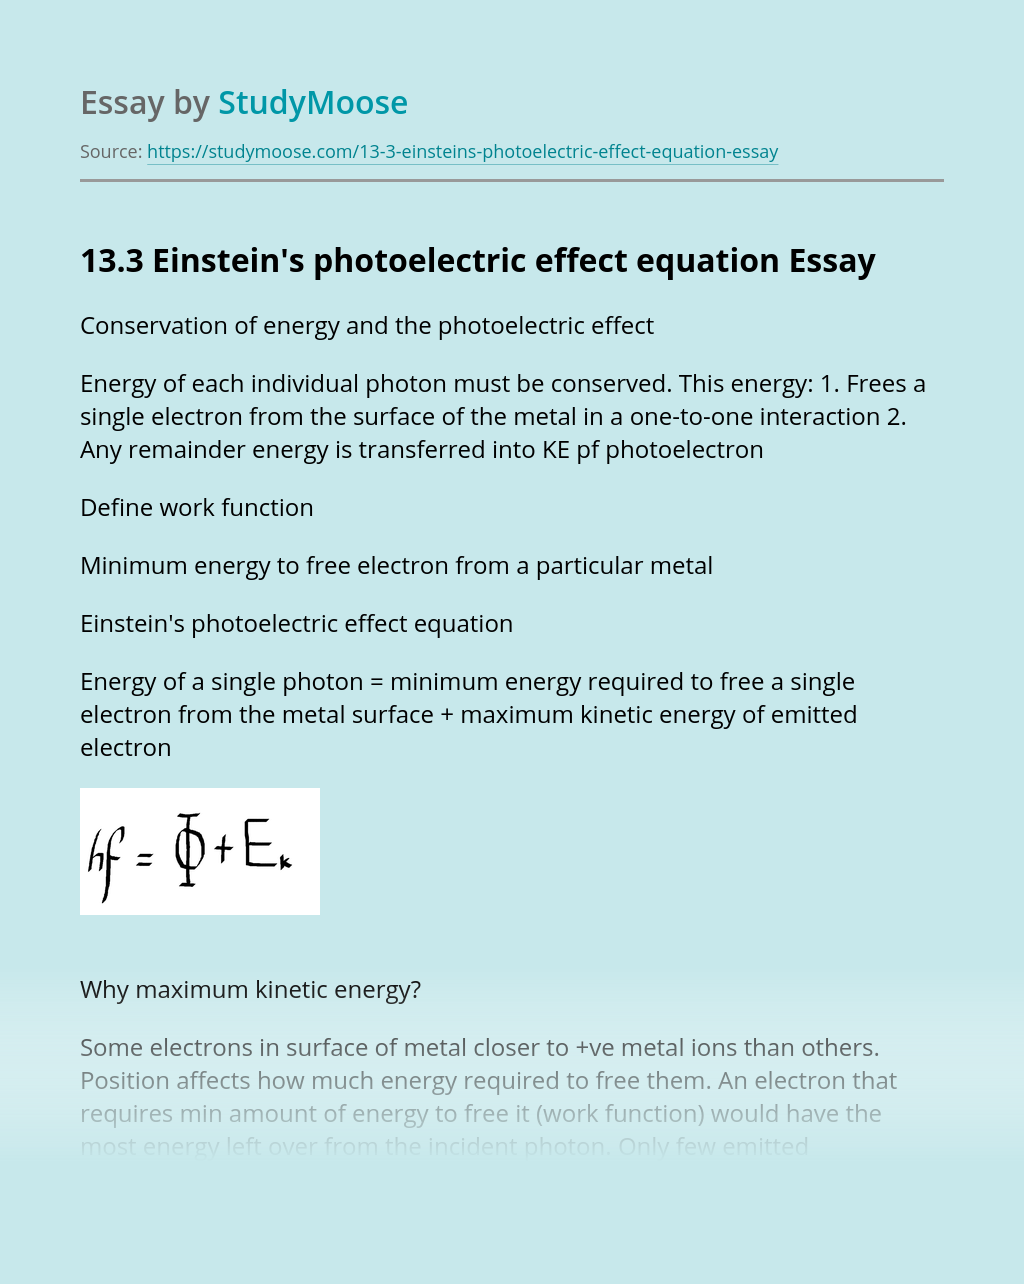 13.3 Einstein's photoelectric effect equation